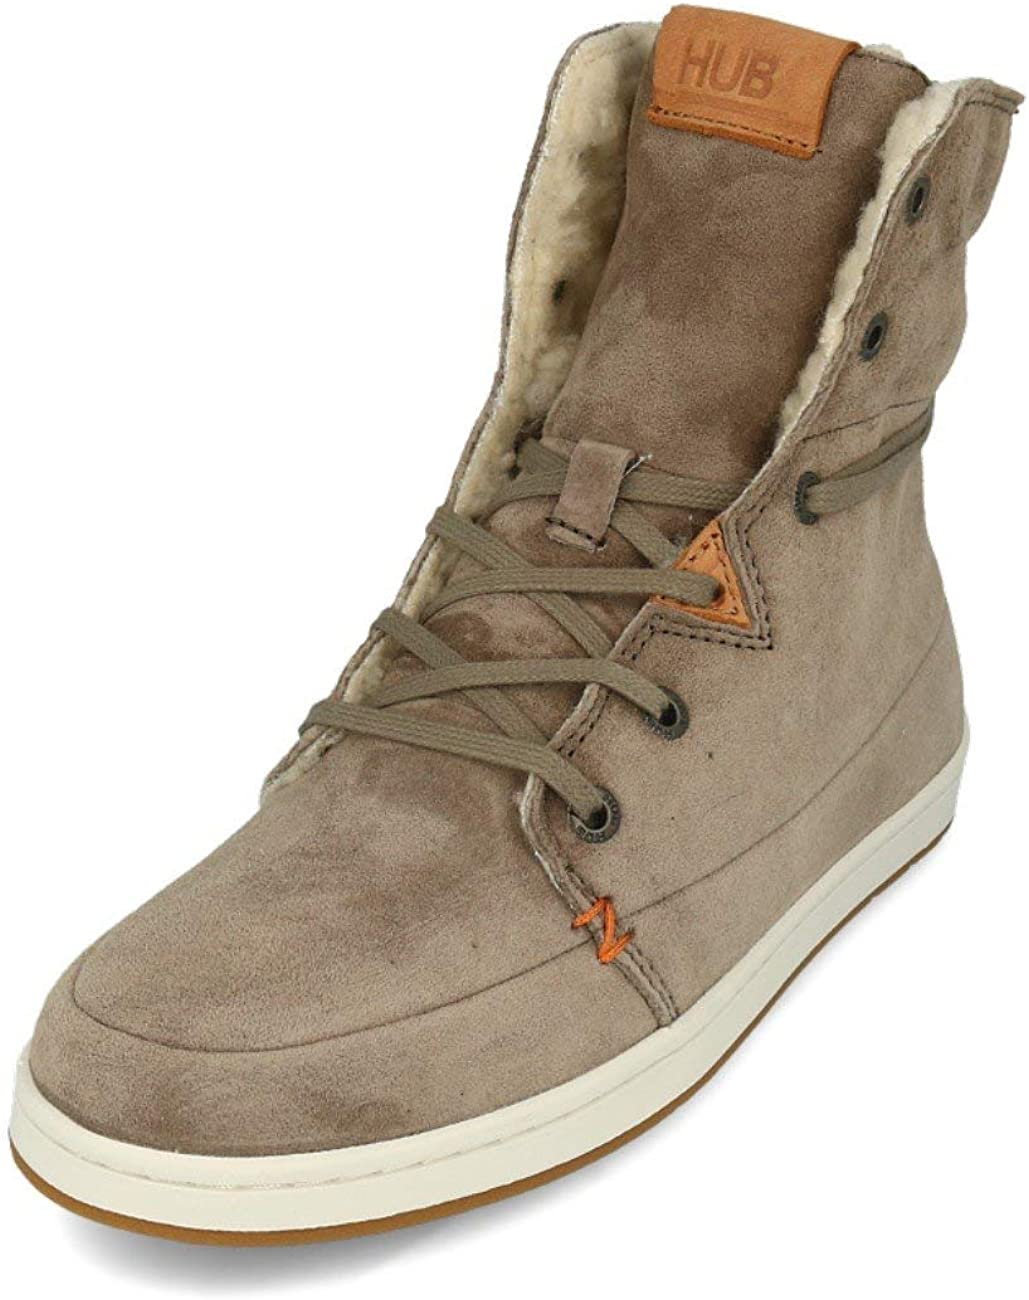 Hub Vermont N30 Nubuck Dark Taupe off White 37: Amazon.it